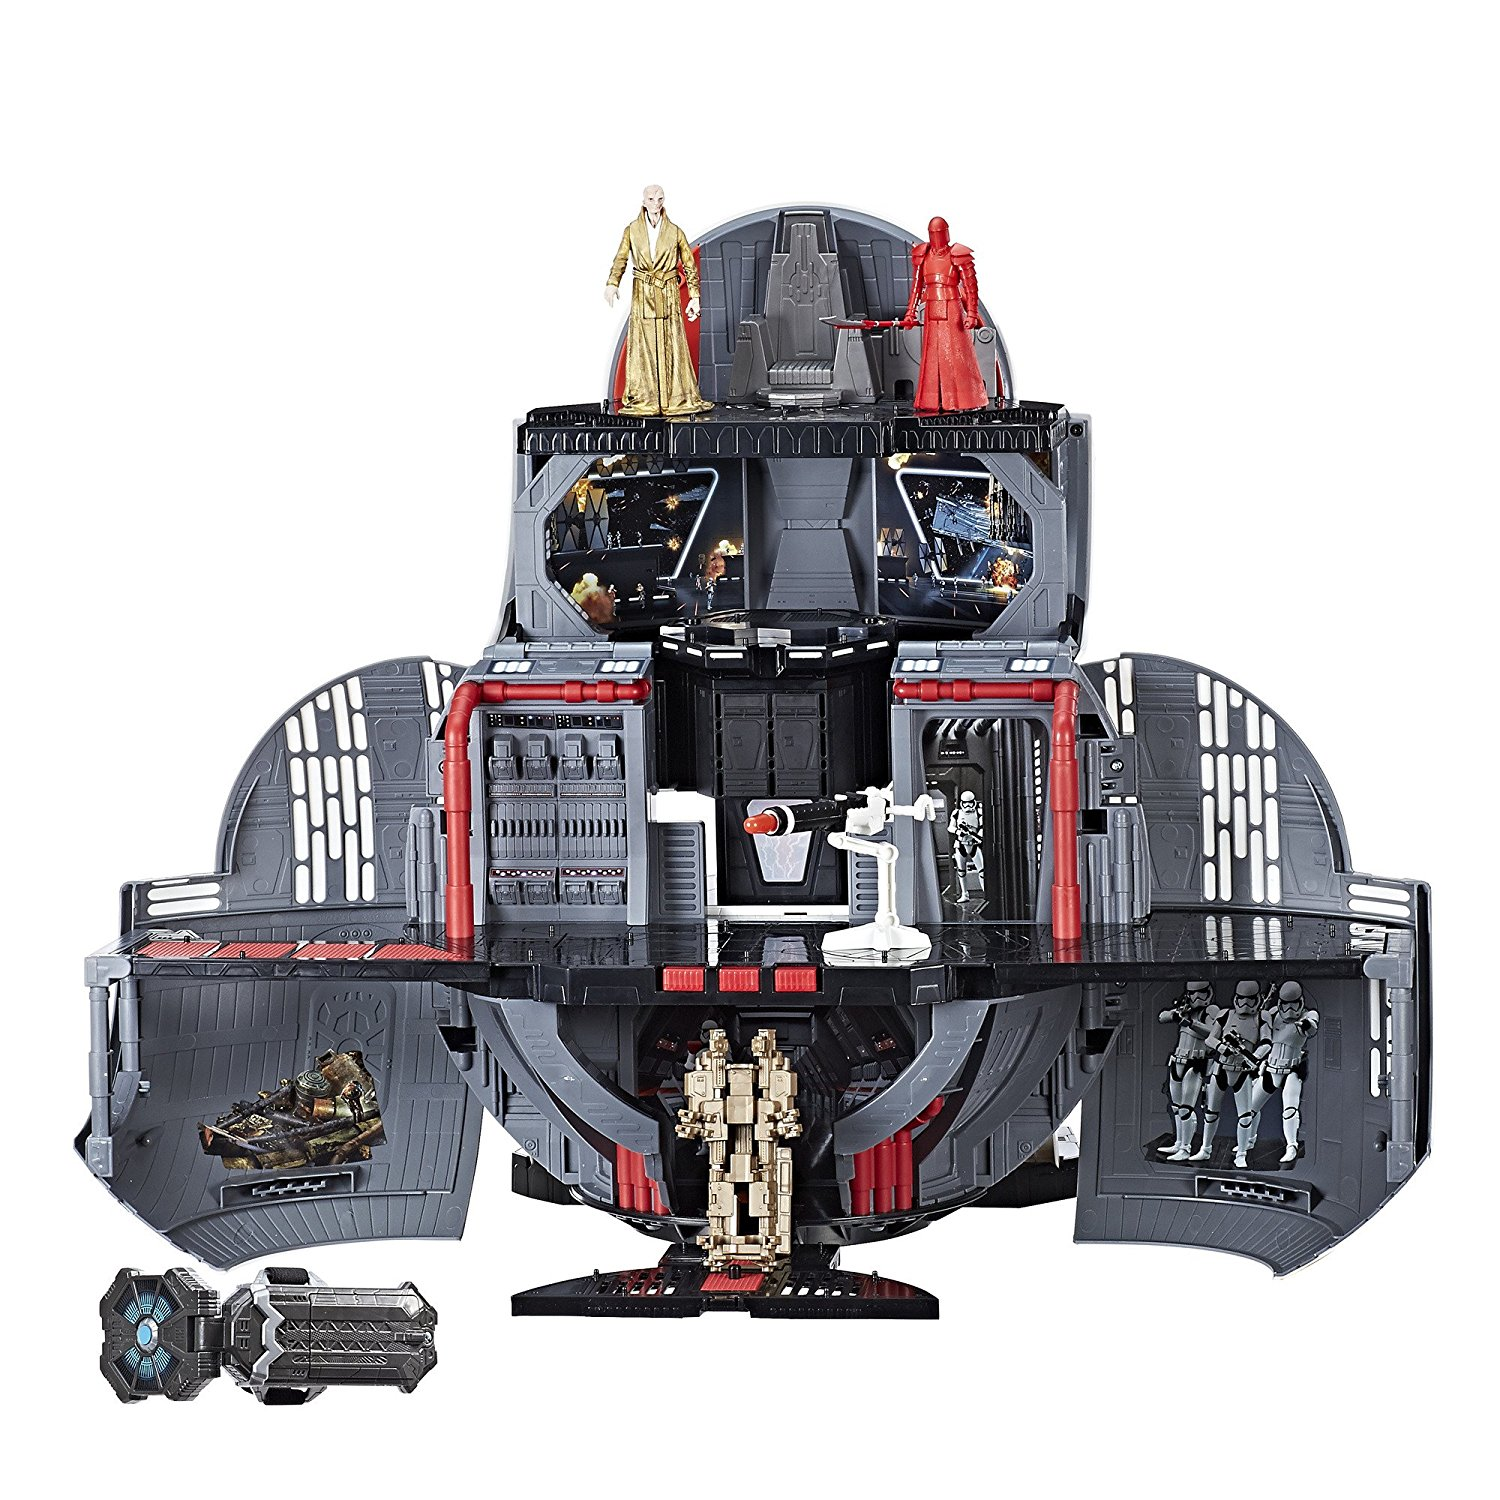 Entertainment Earth Daily Deal – Hasbro Star Wars Force Link BB-8 Mega Playset Now $49